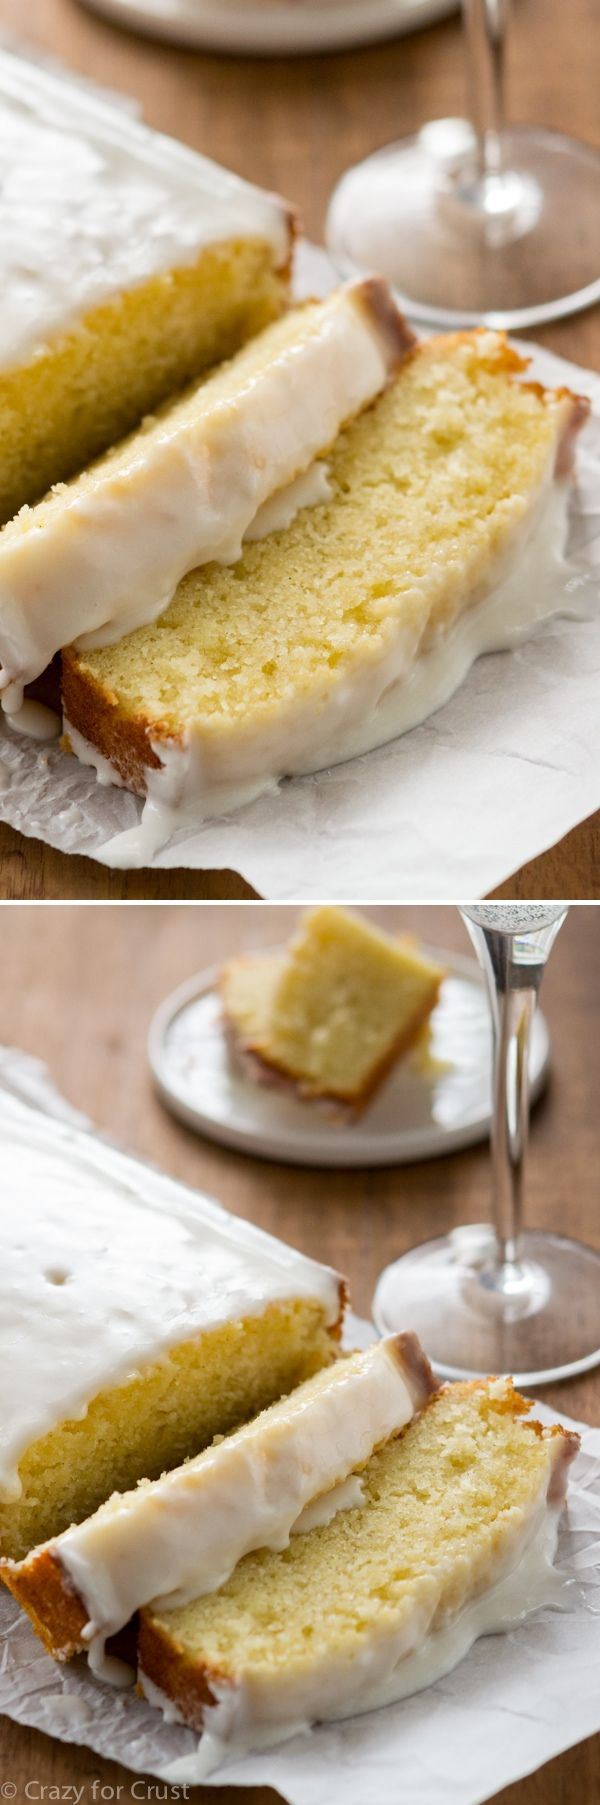 Champagne Pound Cake with triple the champagne flavor! This is the BEST pound cake I've ever eaten. | #nye #holiday #newyearseve #food #desserts #recipe